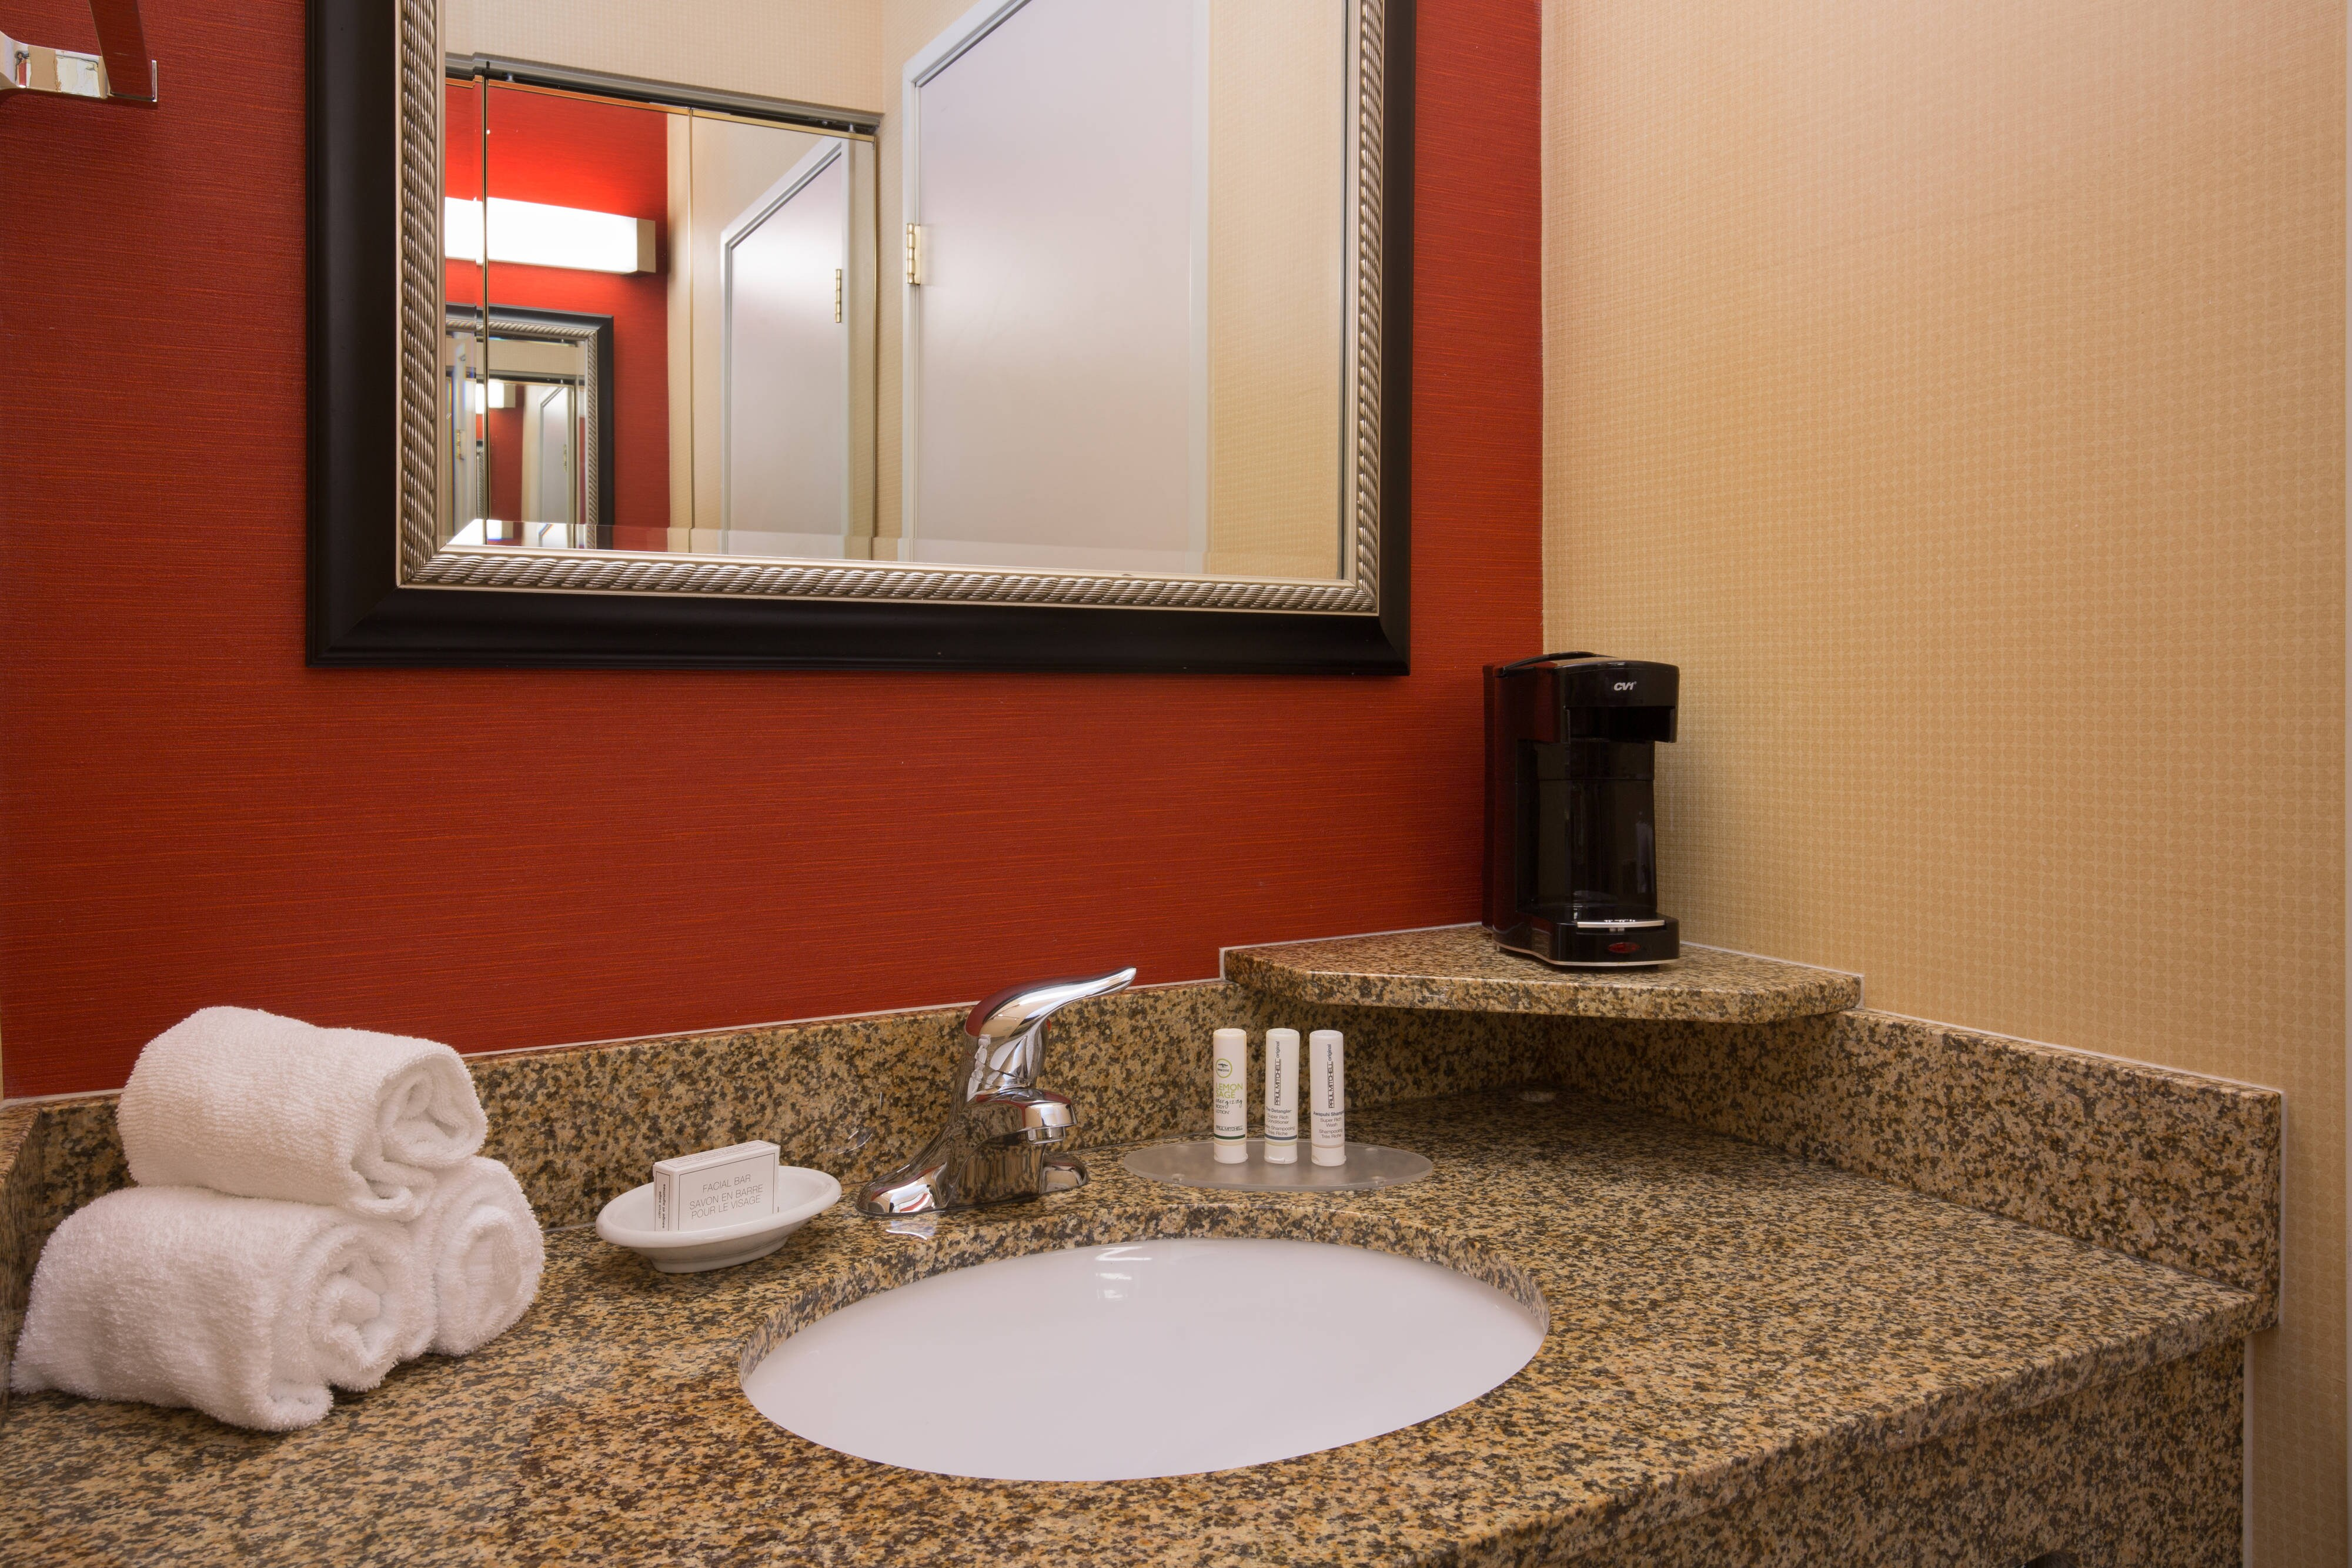 Roseville California Hotel Guest Bathroom